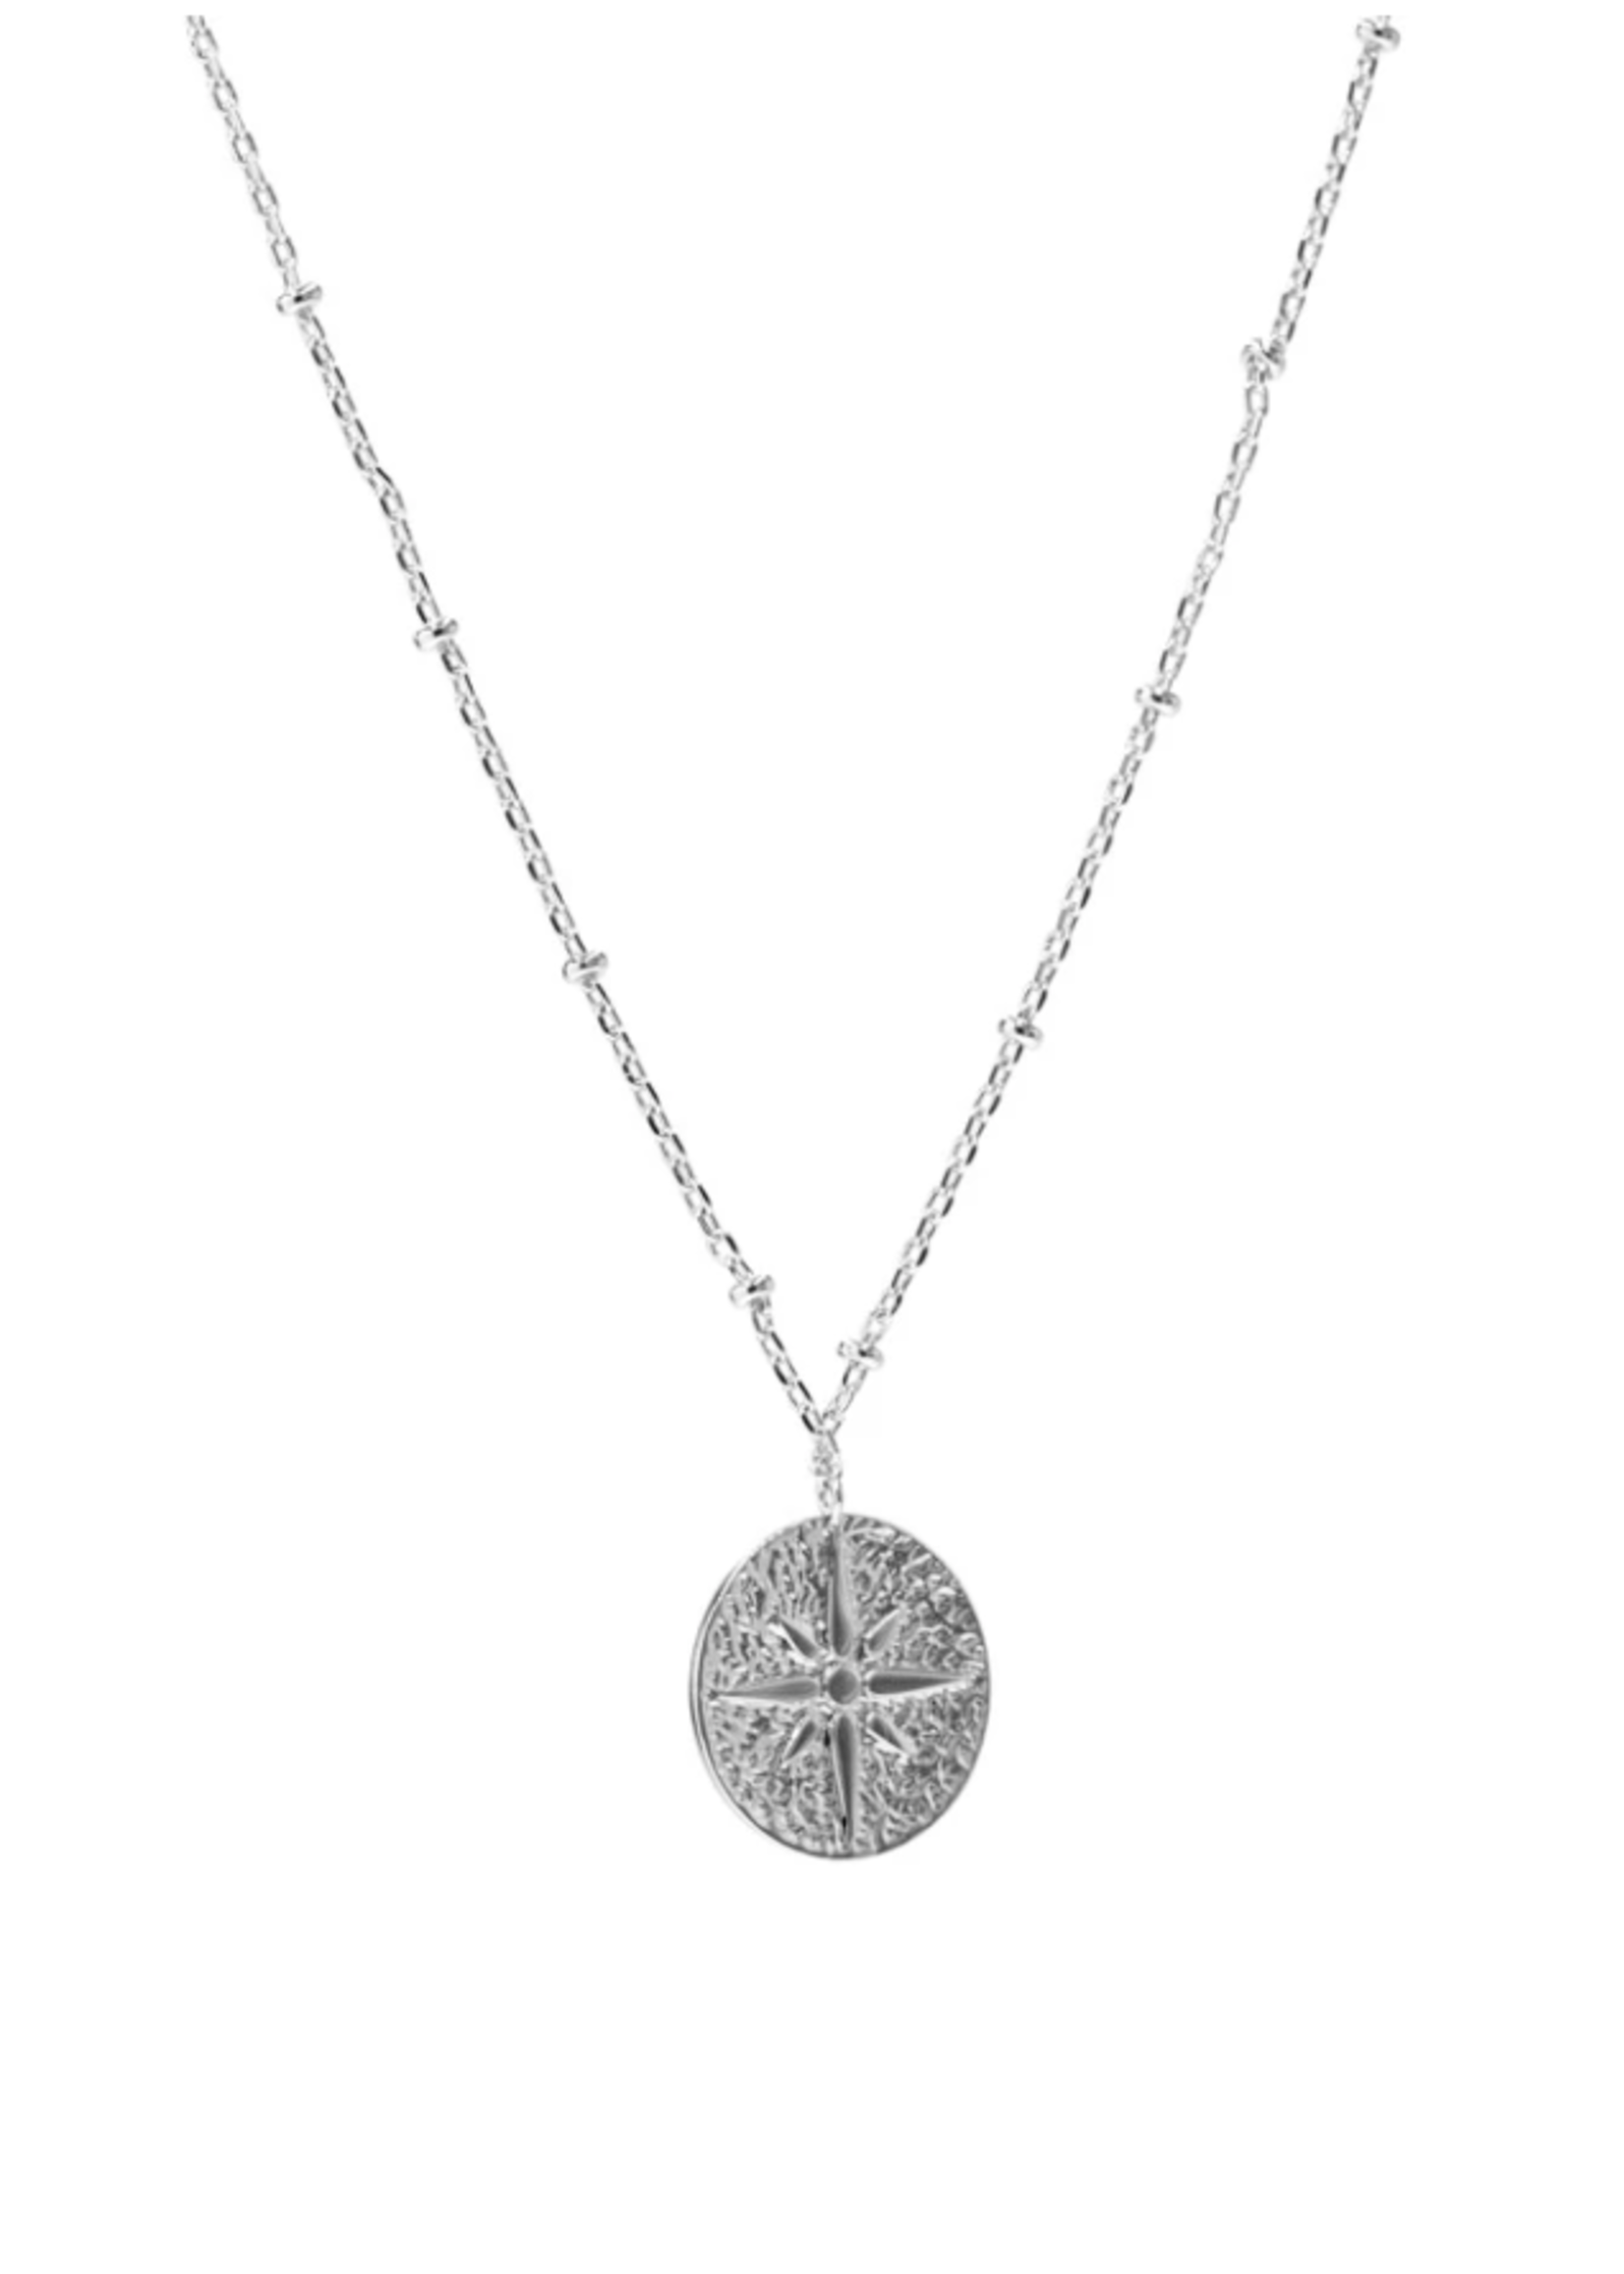 Atmosphere Necklace - Silver